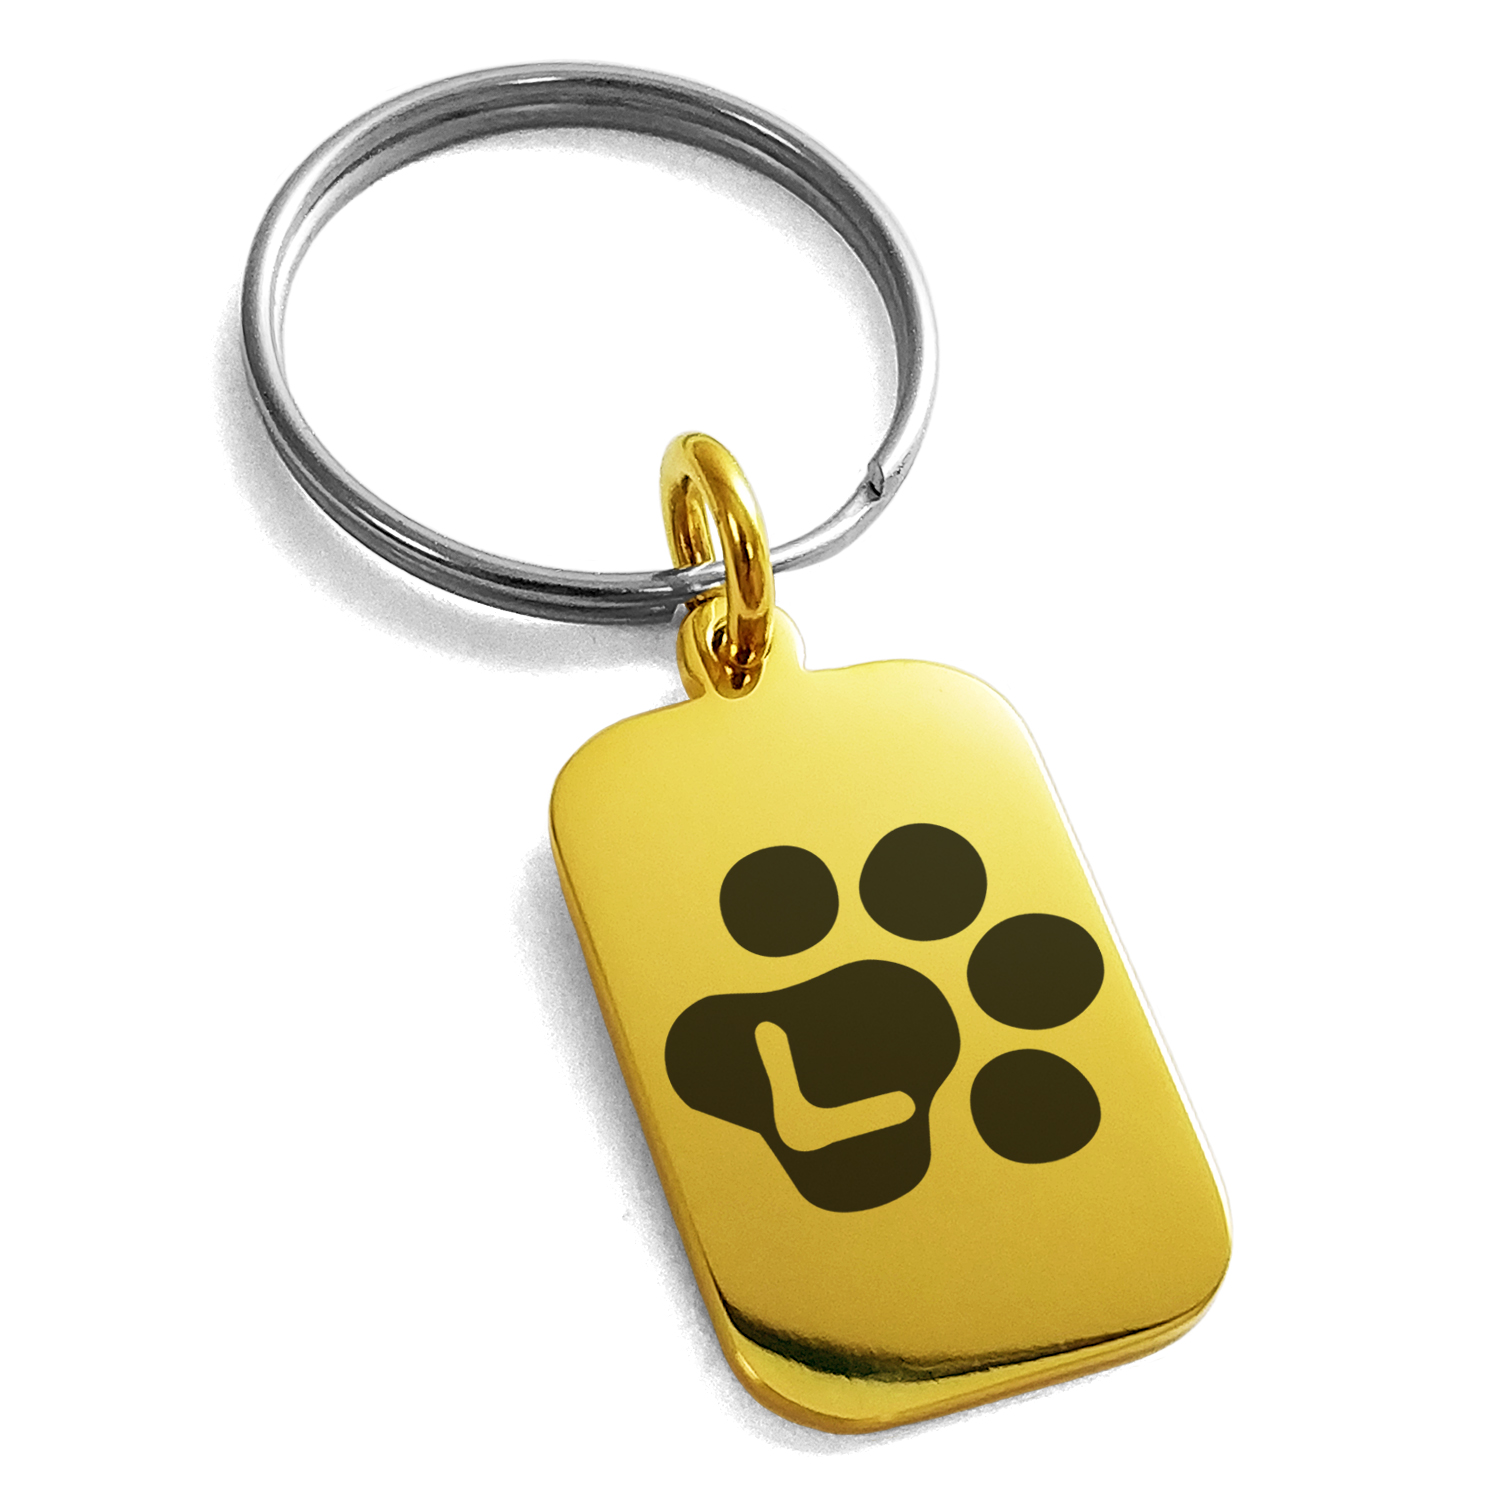 Stainless Steel Letter L Initial Cat Dog Paws Monogram Engraved Small Rectangle Dog Tag Charm Keychain Keyring